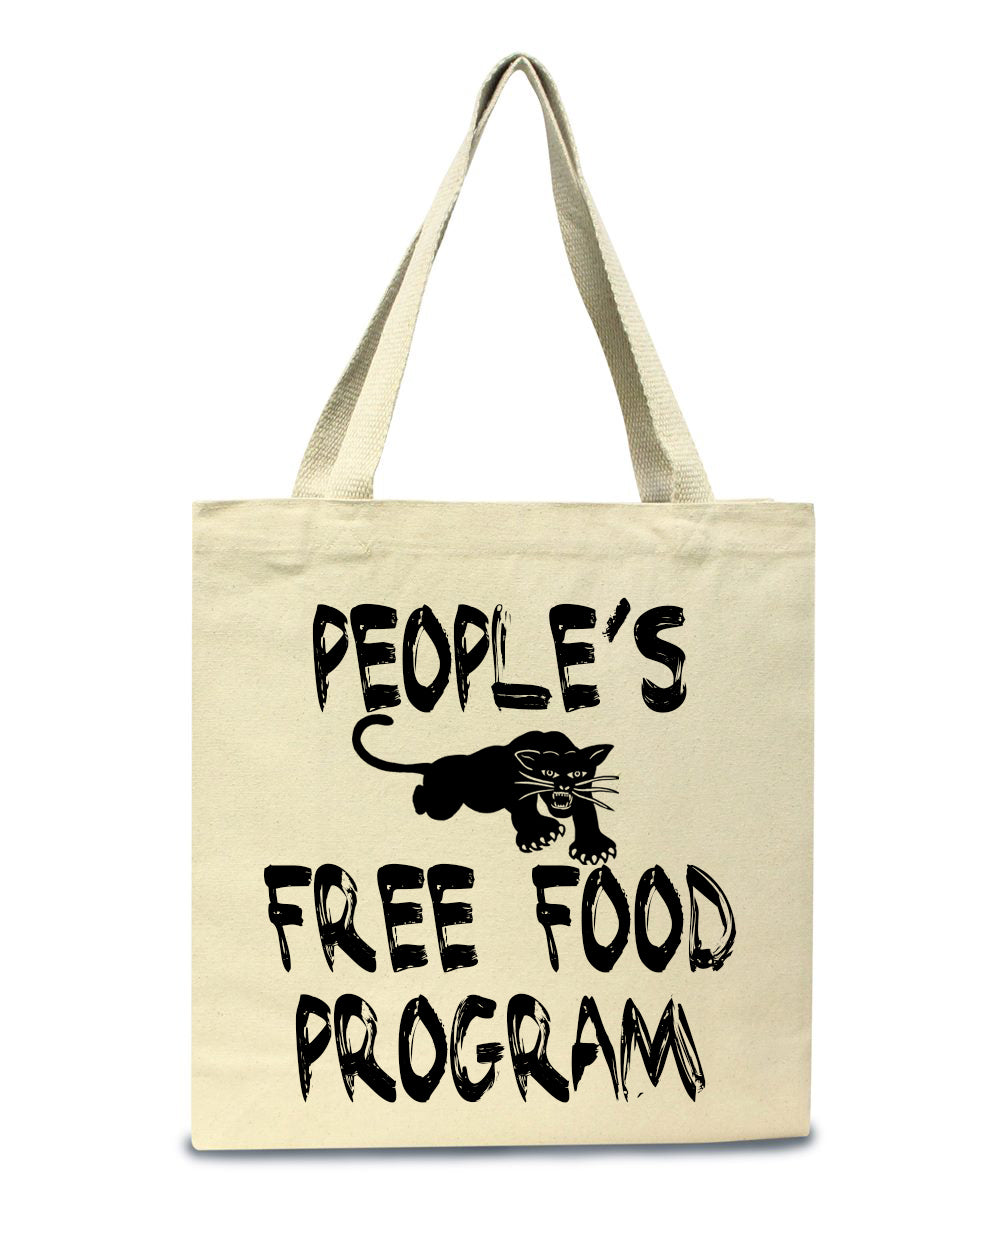 People's free food program tote bag-Luxury Brand LA - Luxury Brand LA - Shop Latest Trends and Hottest Apparel from Luxury Brand LA